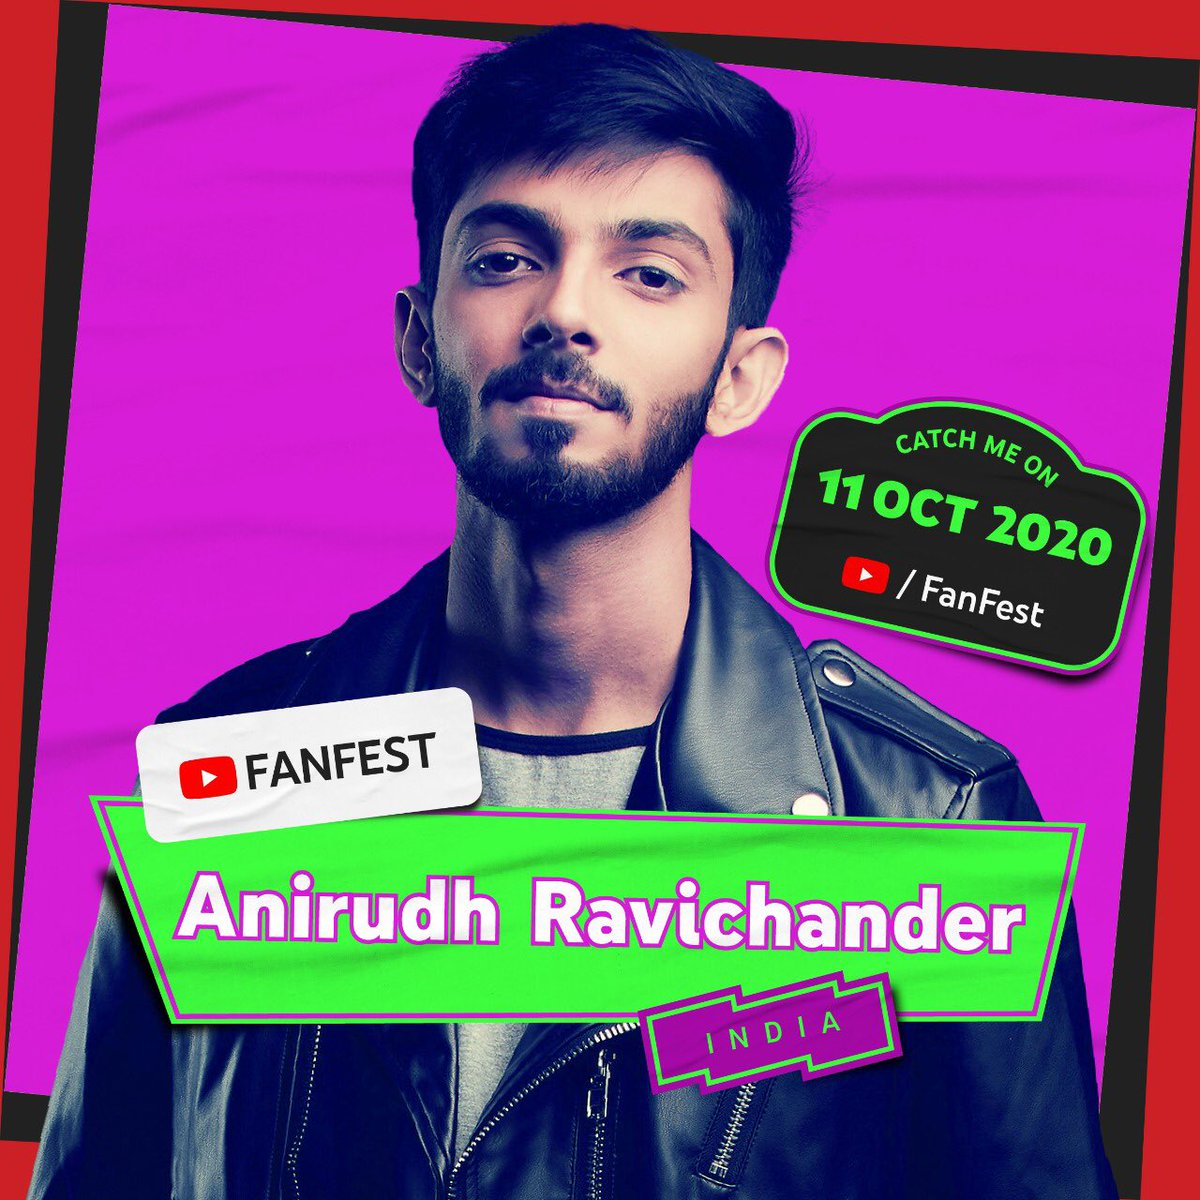 It's happening! I'm so excited to be performing on the #YTFF2020 livestream on 11 Oct 🥳 Remember to follow @YouTubeFanFest for more updates on the show details! https://t.co/zbGUhHnA8p